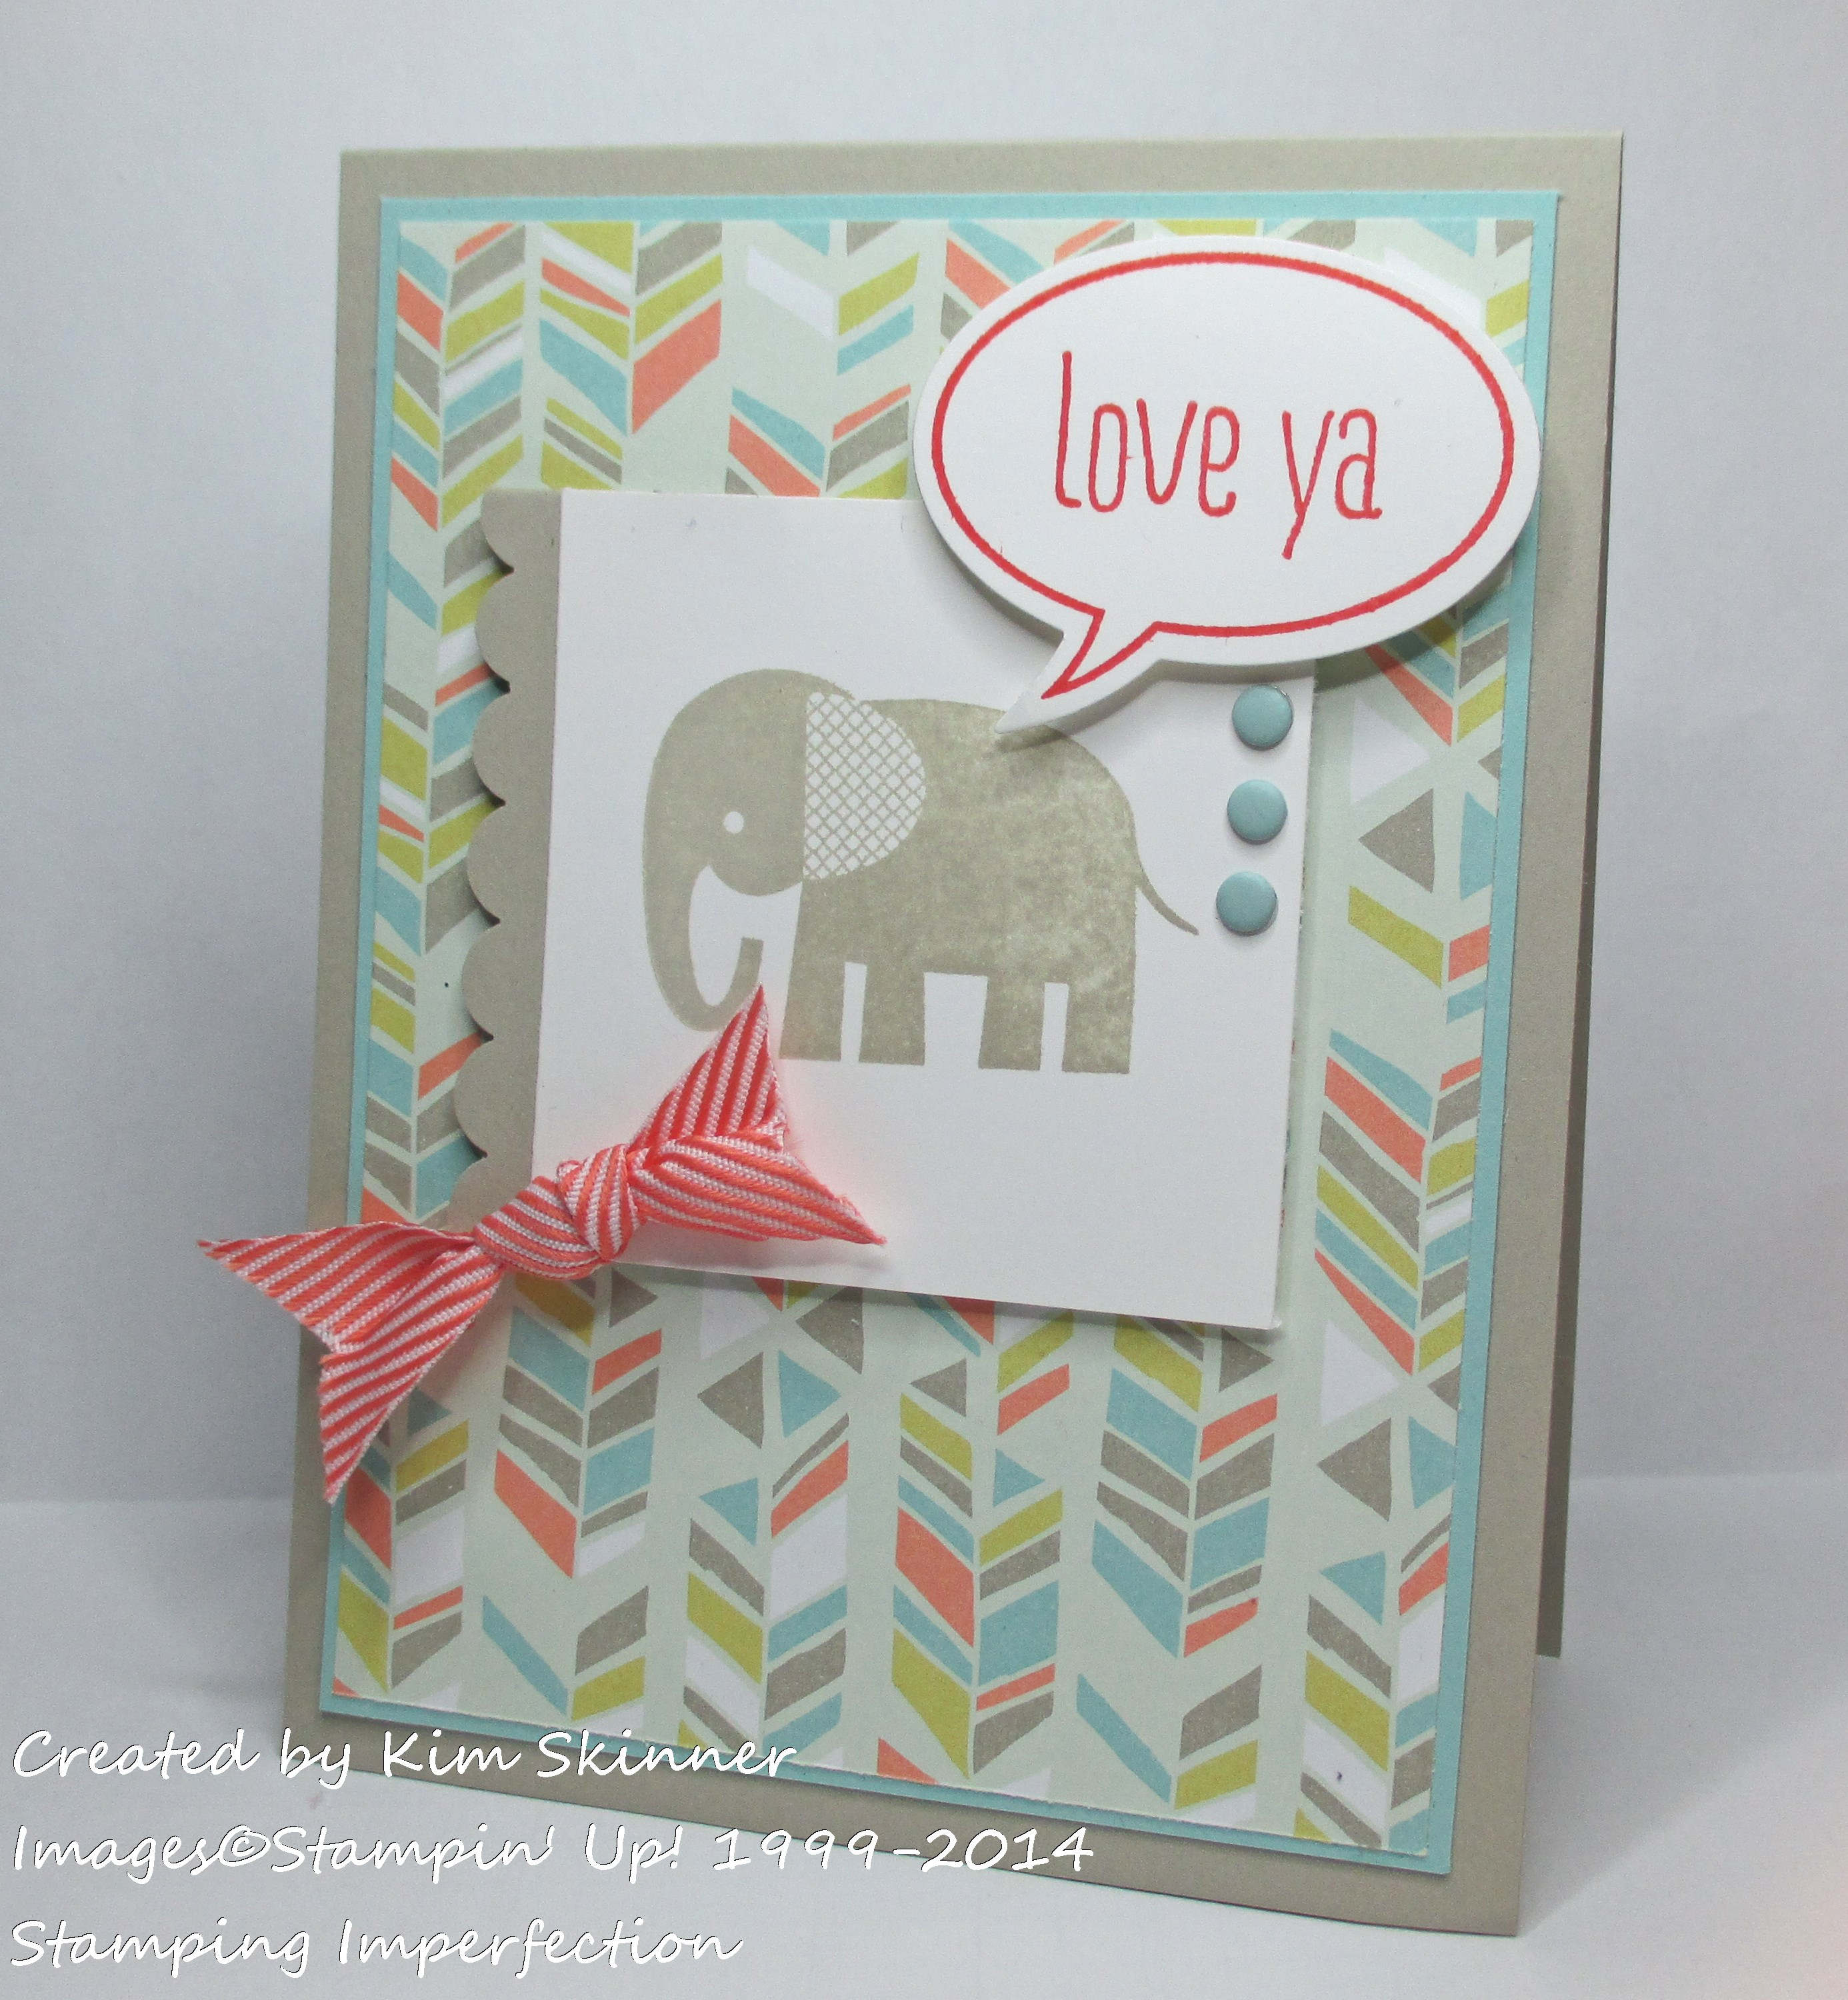 stamping imperfection kid card